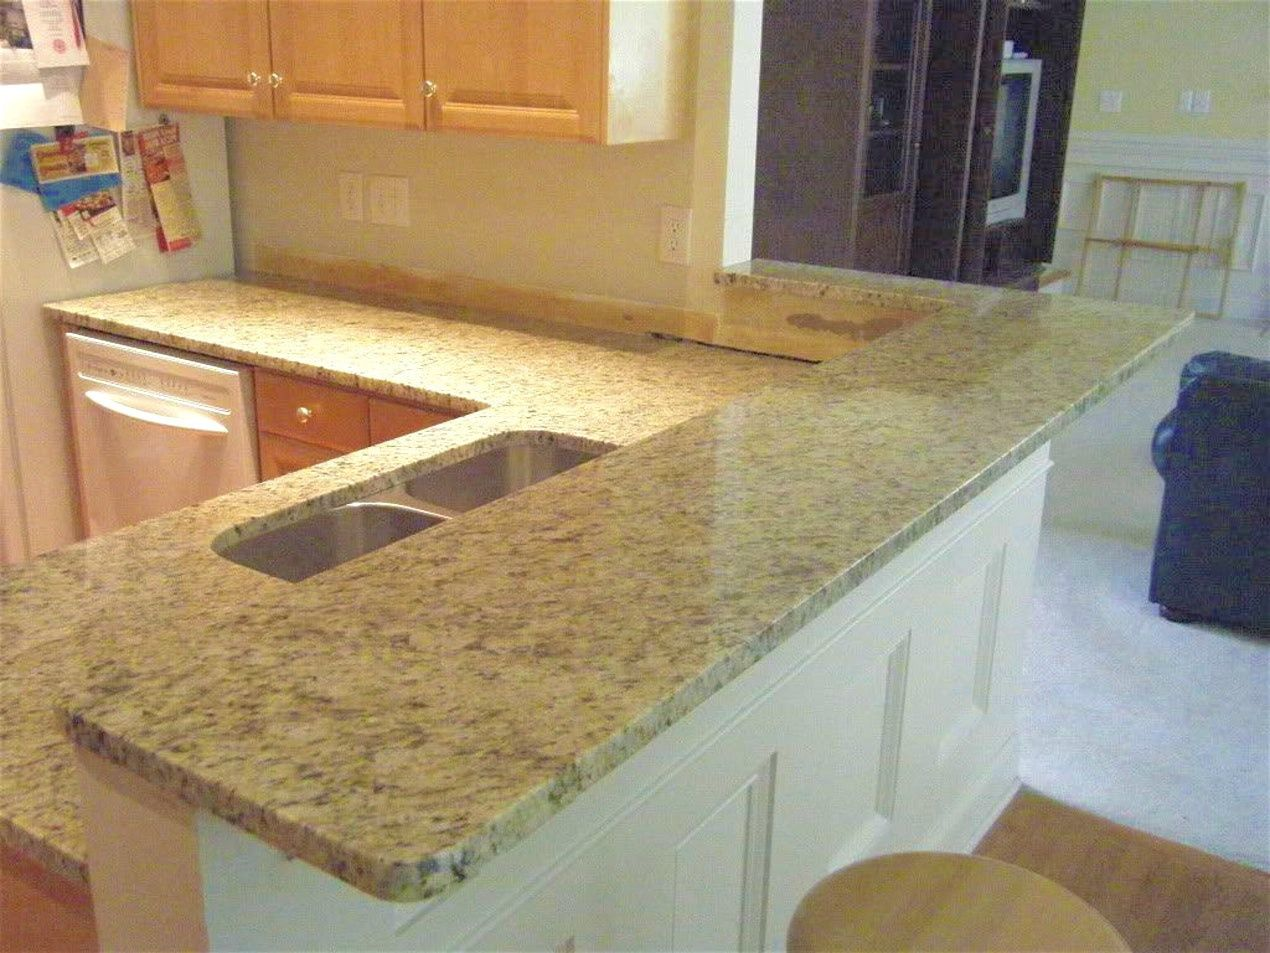 70 Quartz Countertop Weight Per Square Foot Kitchen Cabinet Inserts Ideas Check More At